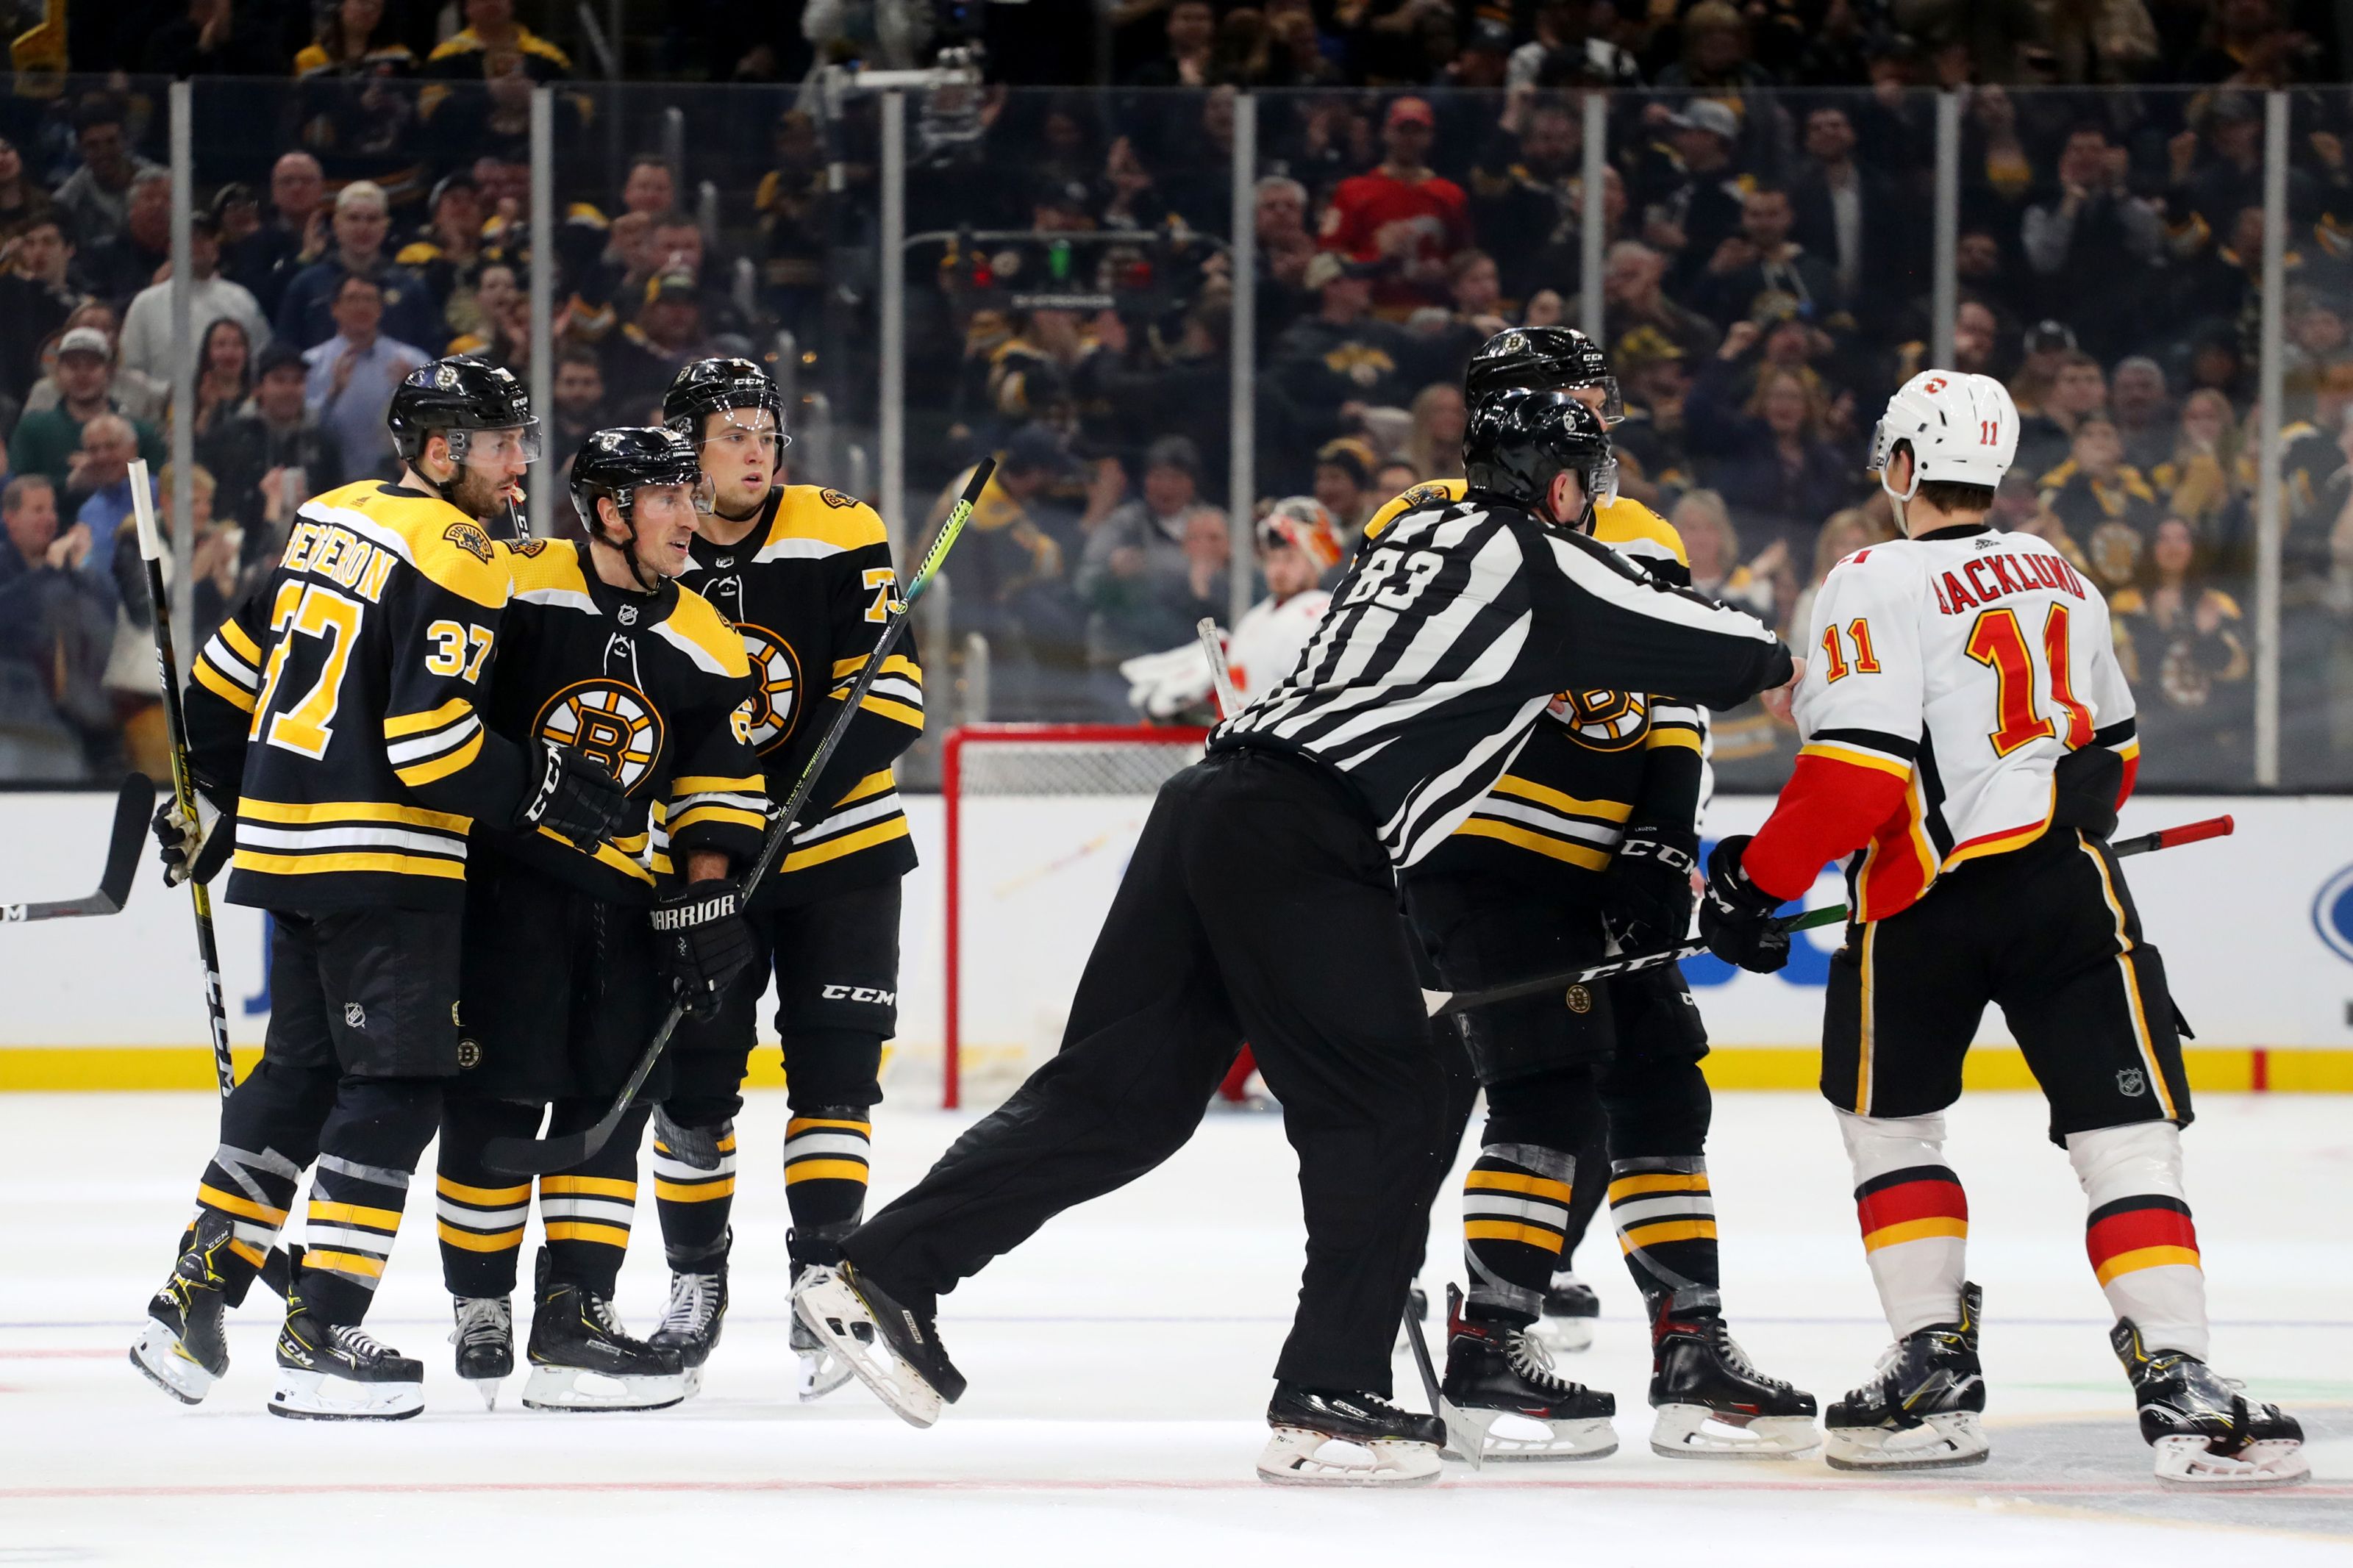 Boston Bruins: Brad Marchand needs to tone it down a little